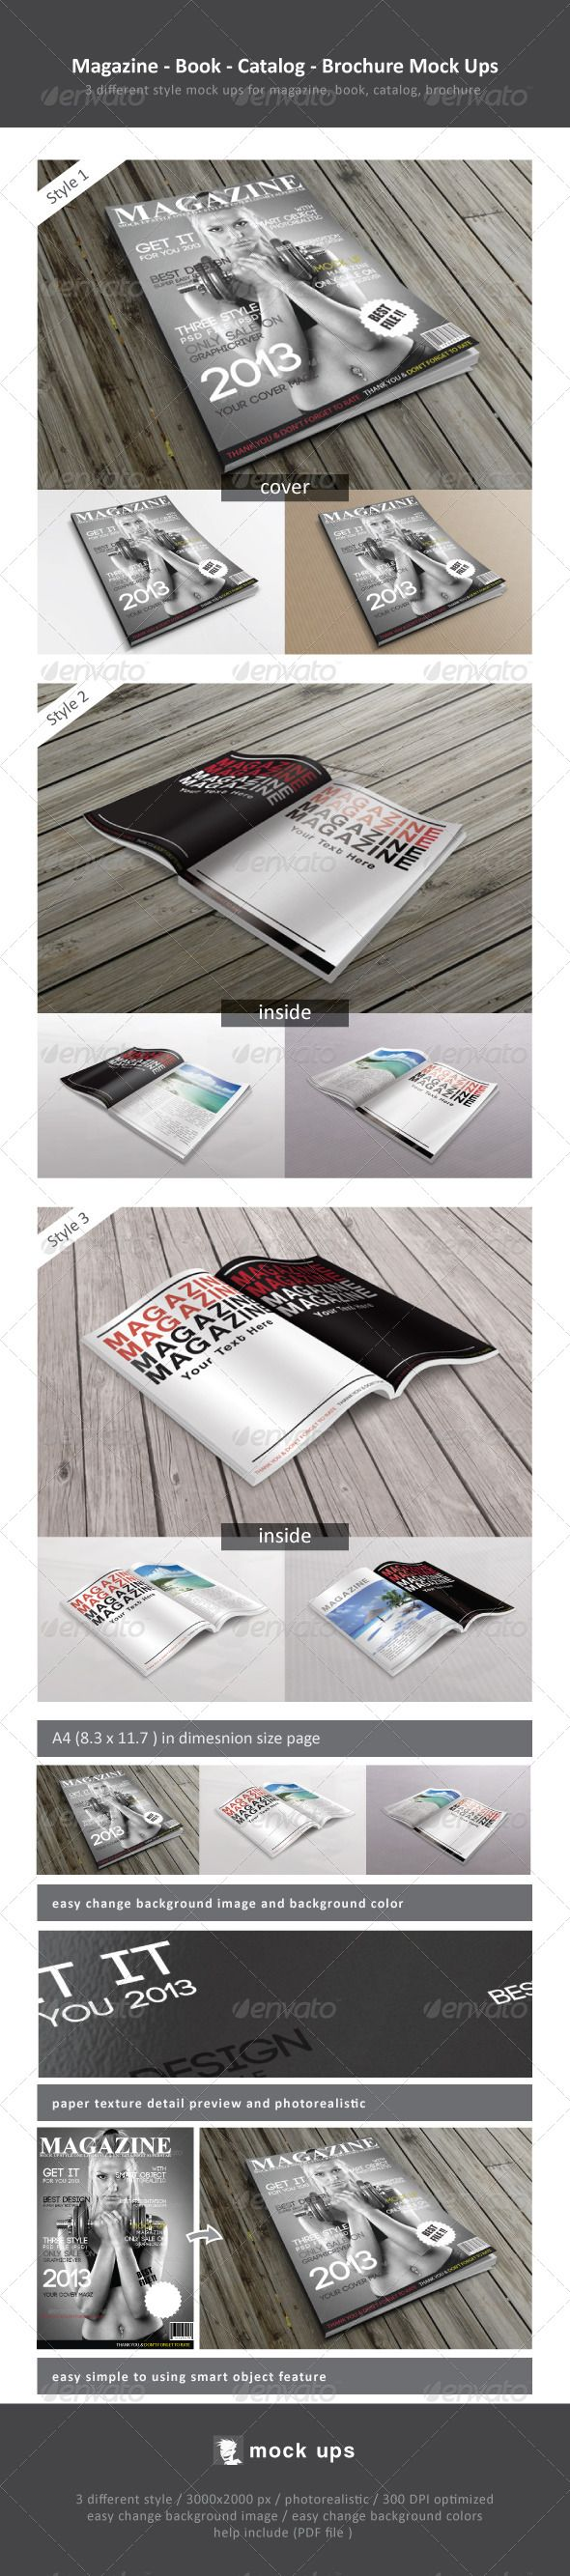 35 best graphics images on pinterest font logo mockup and photoshop